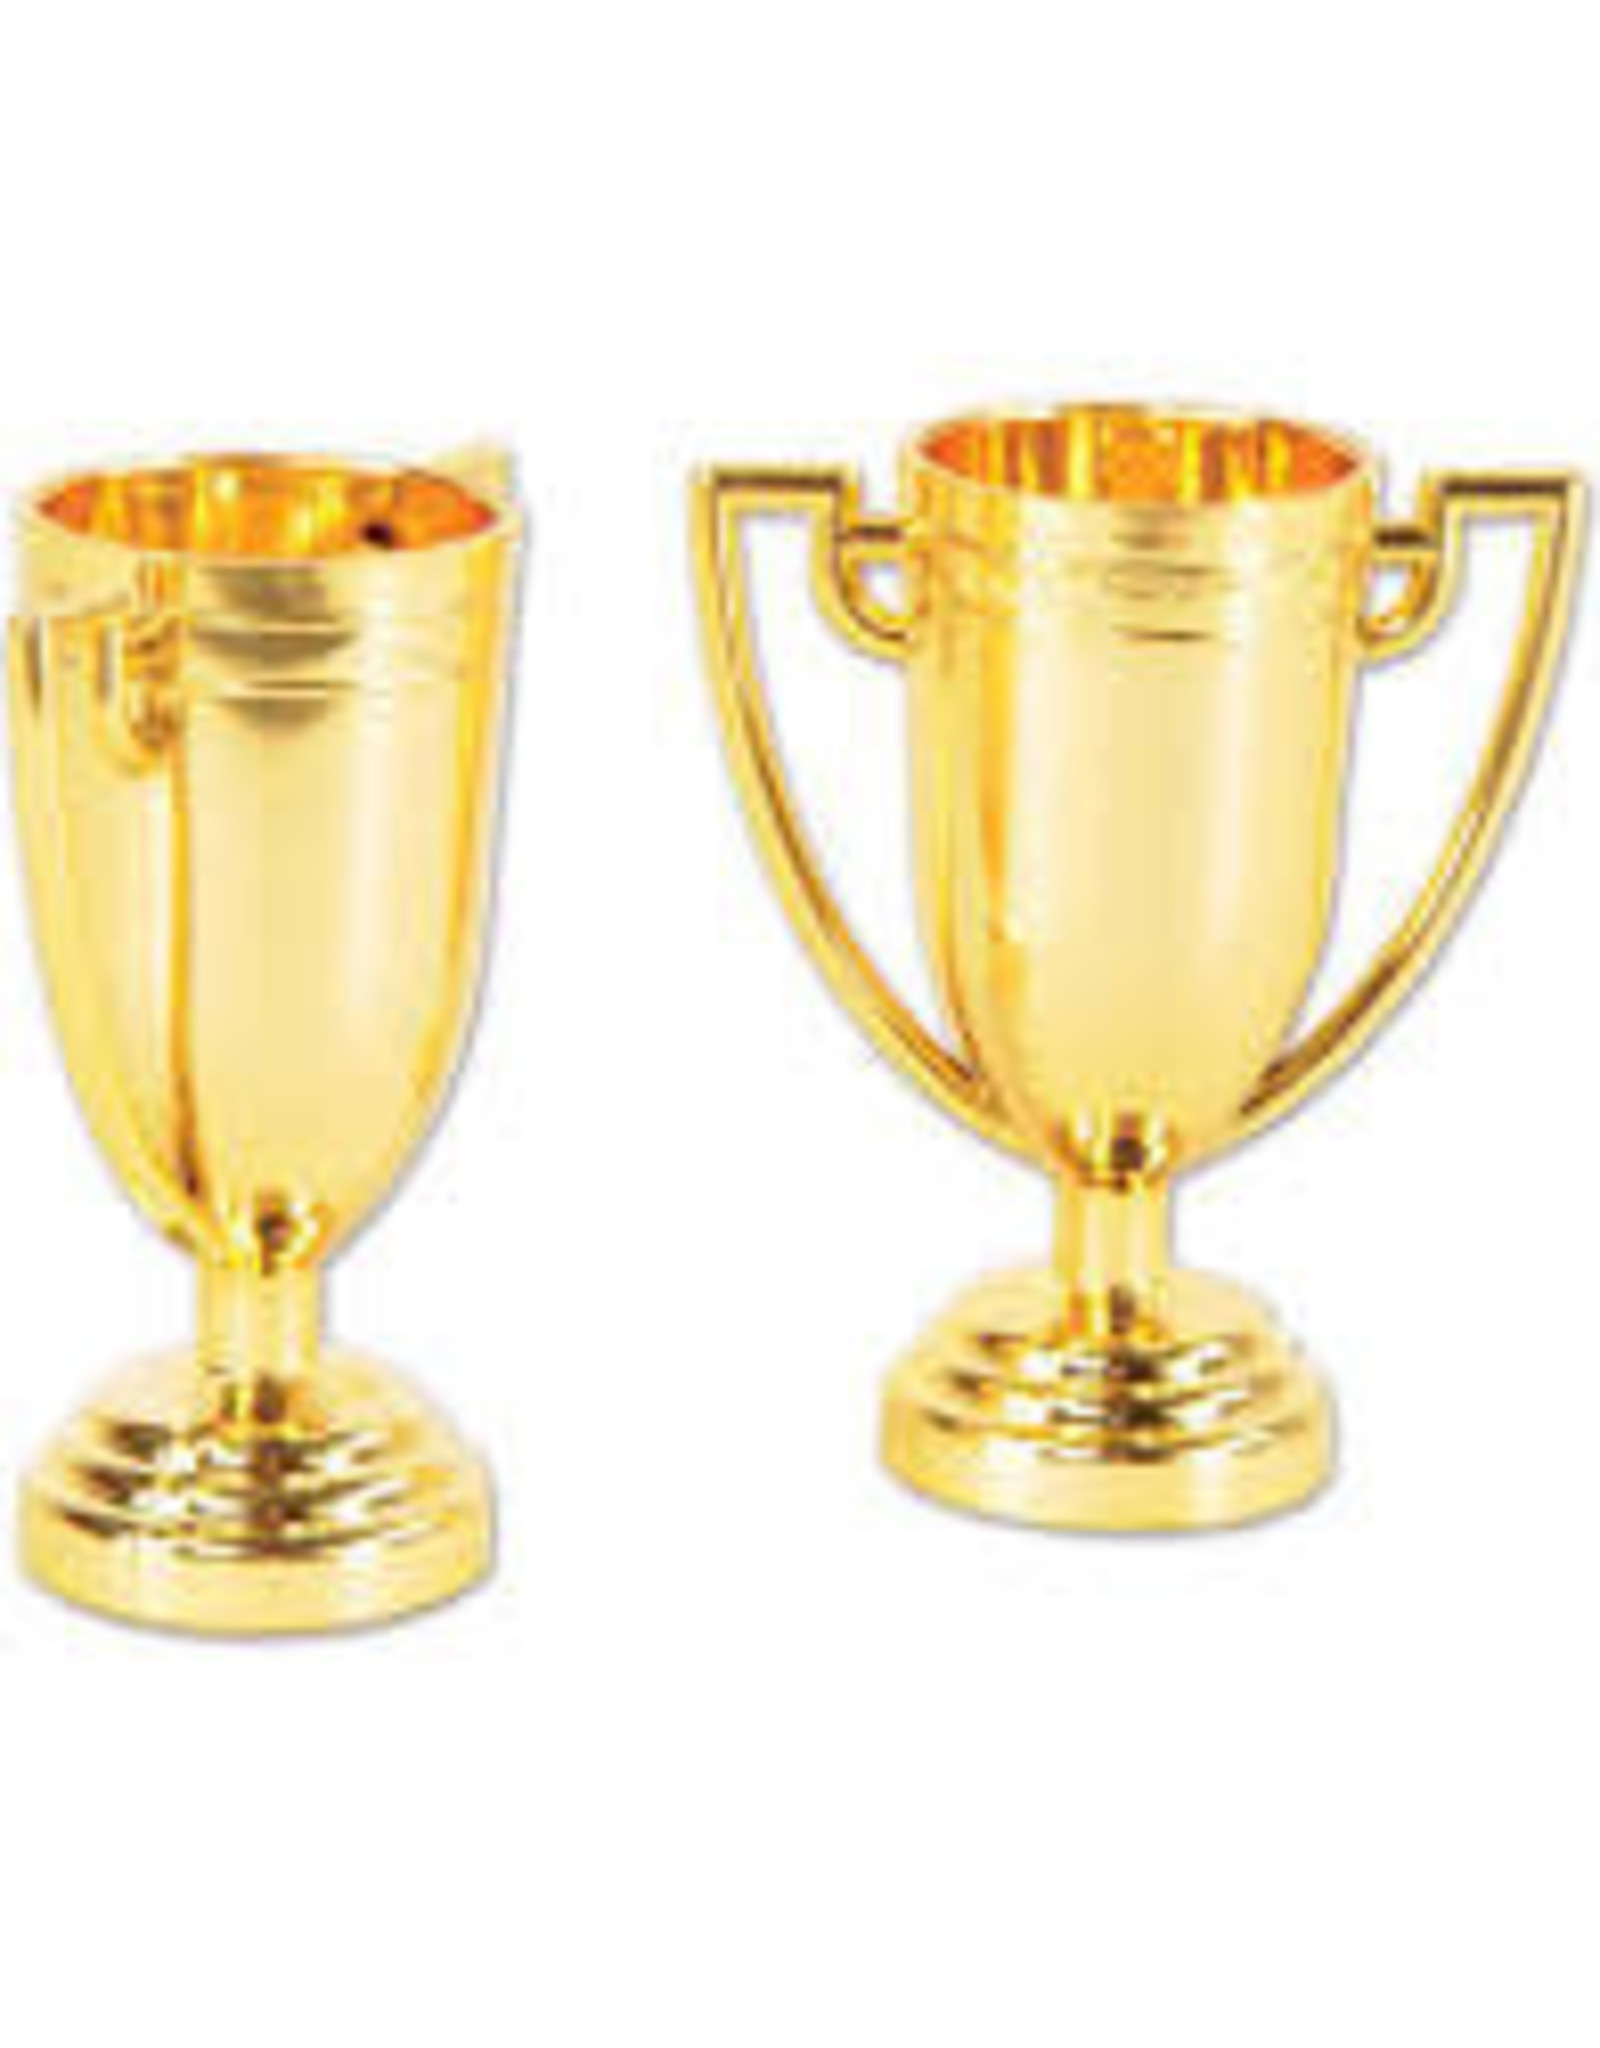 "Beistle 2.75"" Trophy Cups - 8ct."